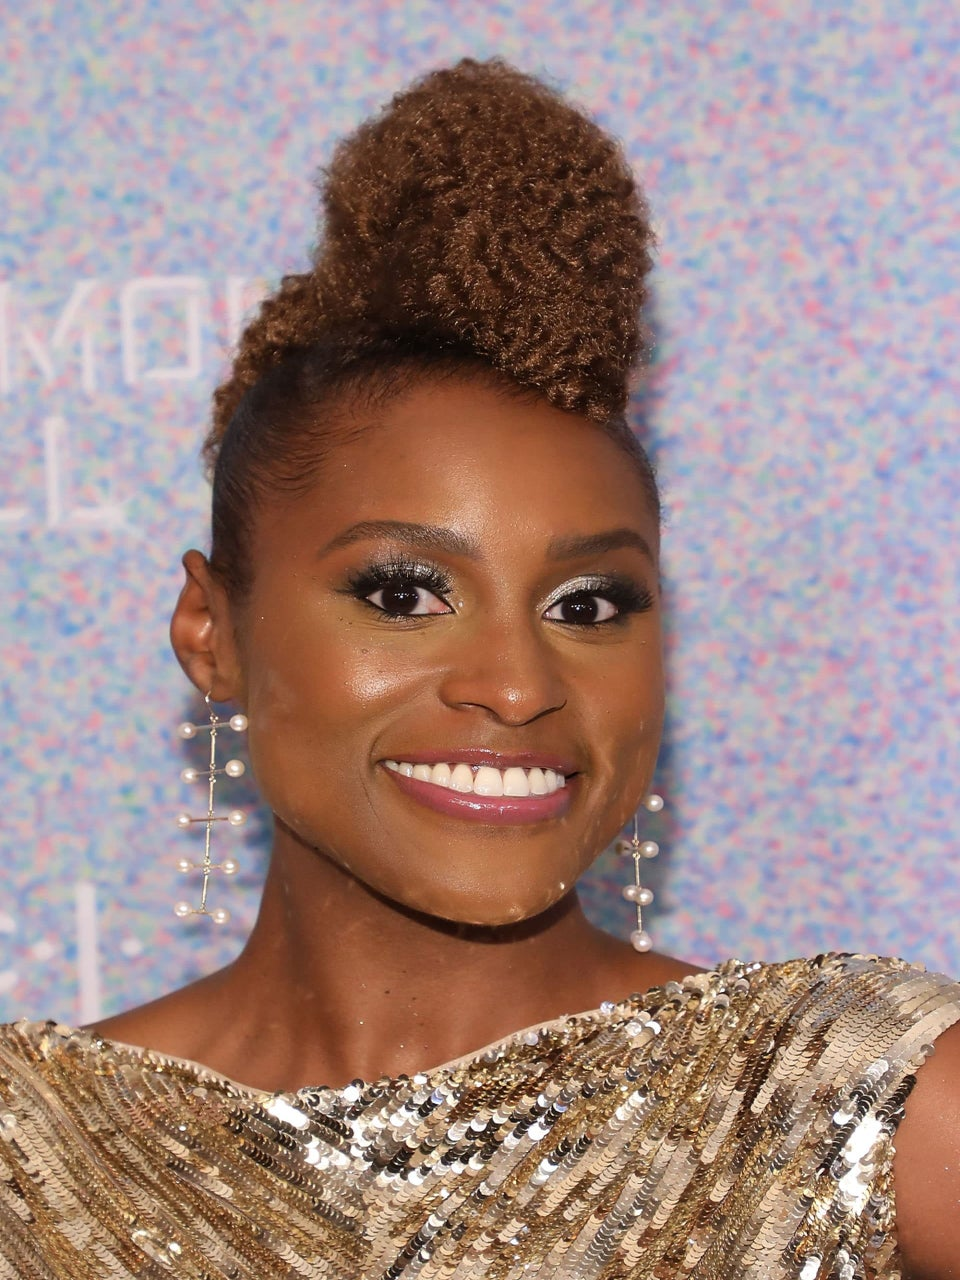 12 Times For The Birthday Chick: Cheers To Issa Rae's Most Epic Fashion Moments